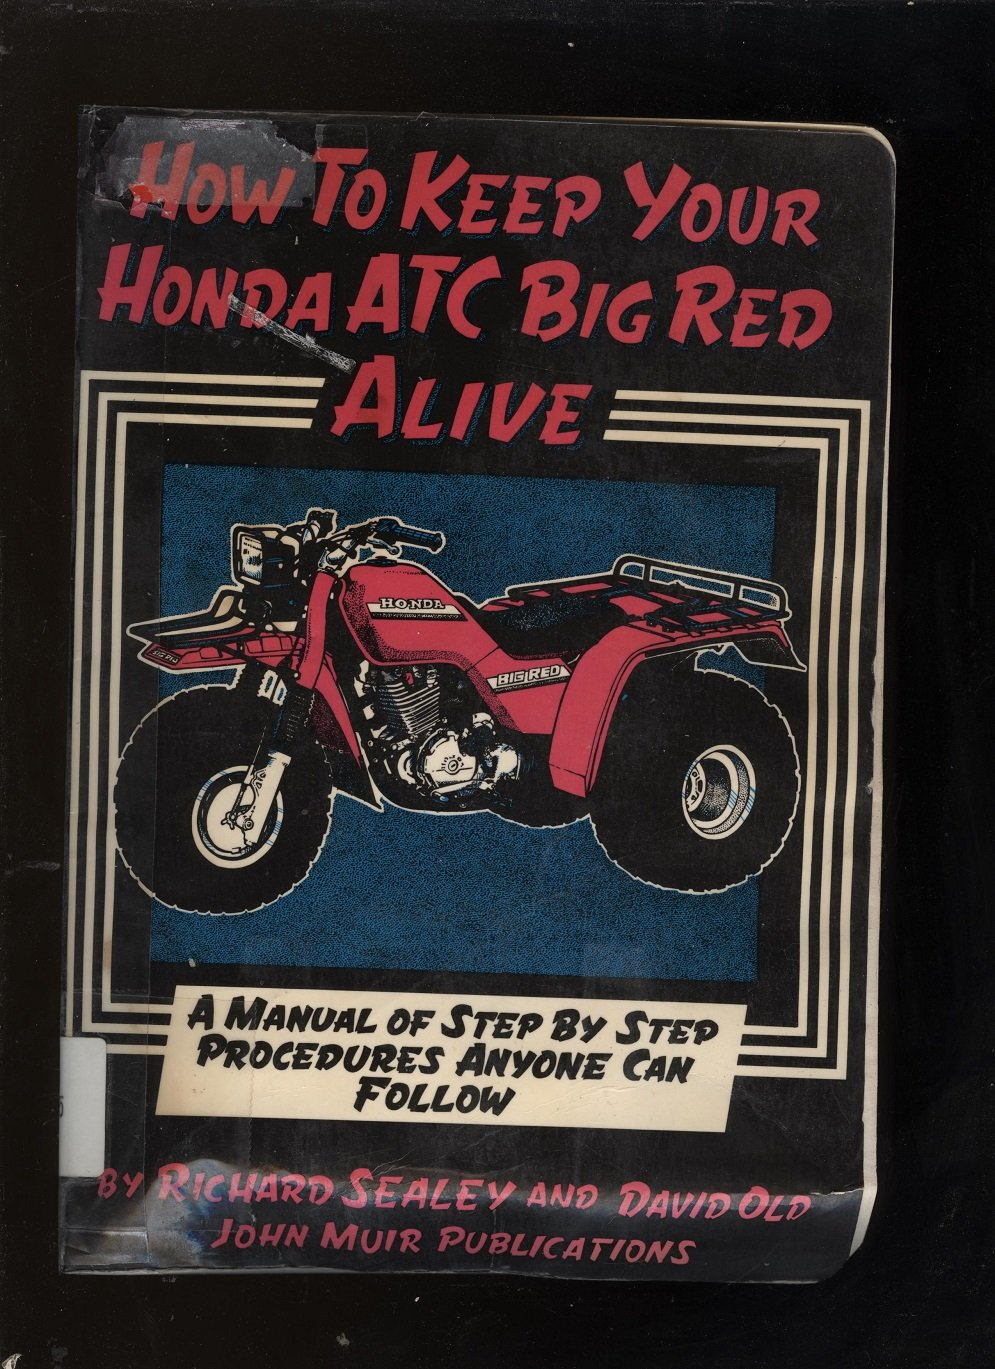 How to Keep Your Honda Atc Big Red Alive: A Manual of Step by Step  Procedures Anyone Can Follow: Richard Sealey, David Old: 9780912528458:  Amazon.com: Books